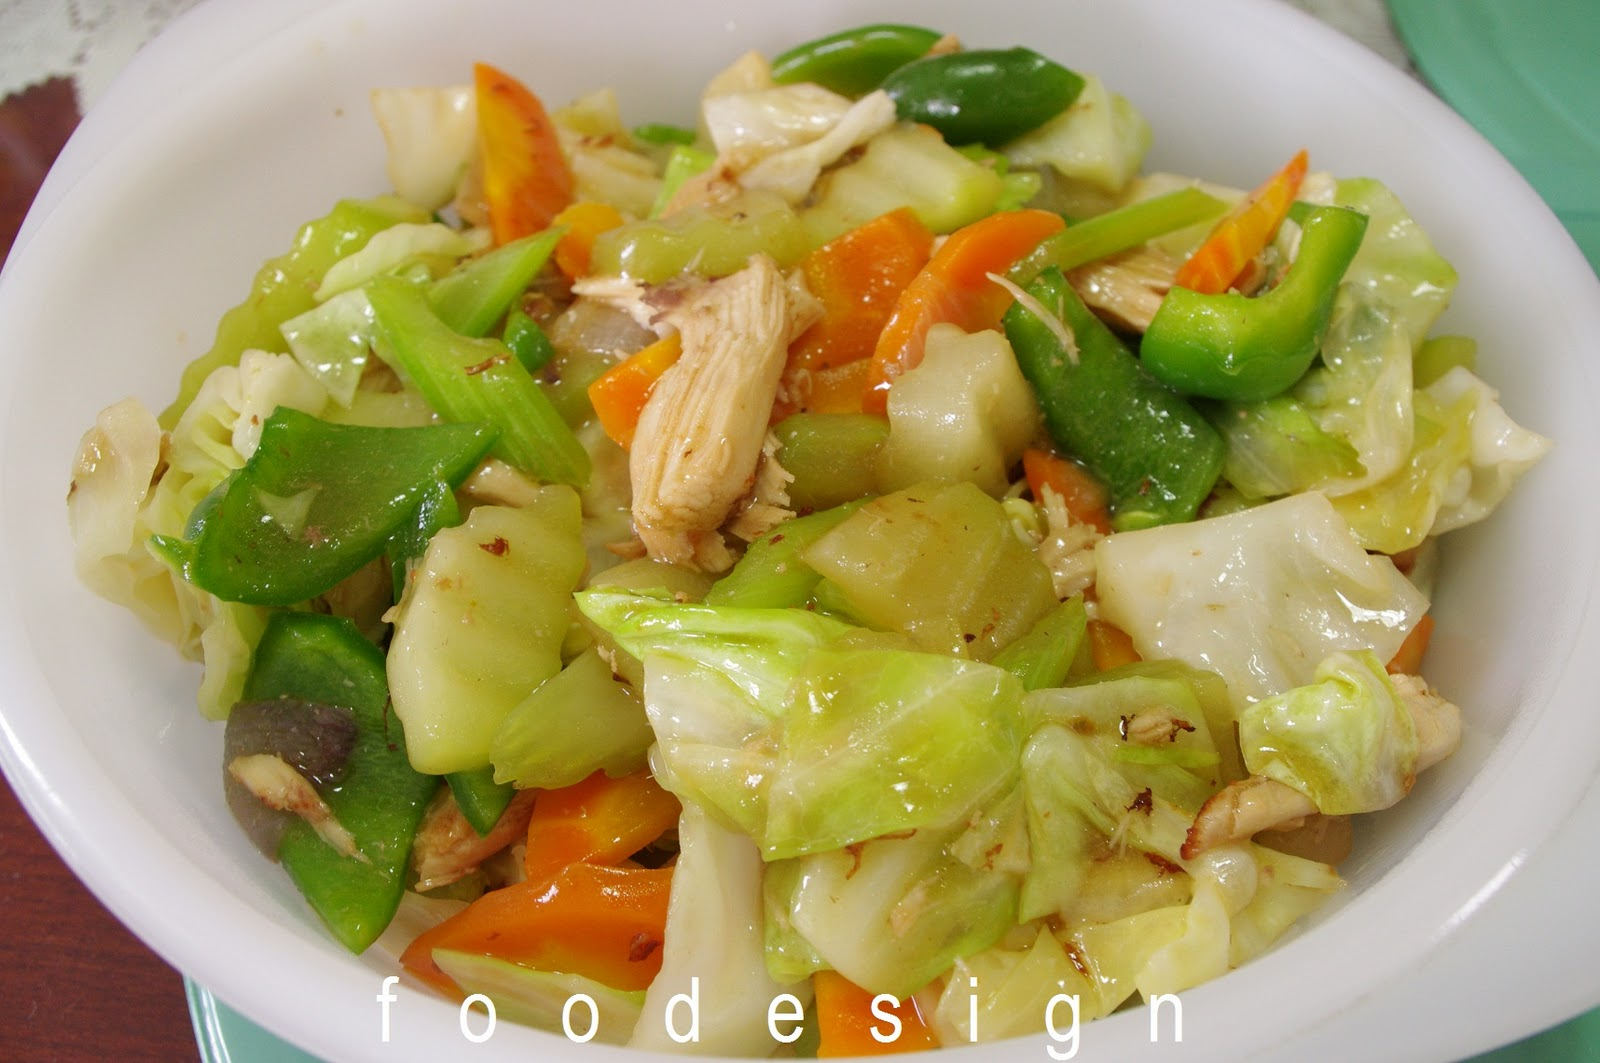 ... of fresh vegetables in this chinese vegetable dish called chop suey